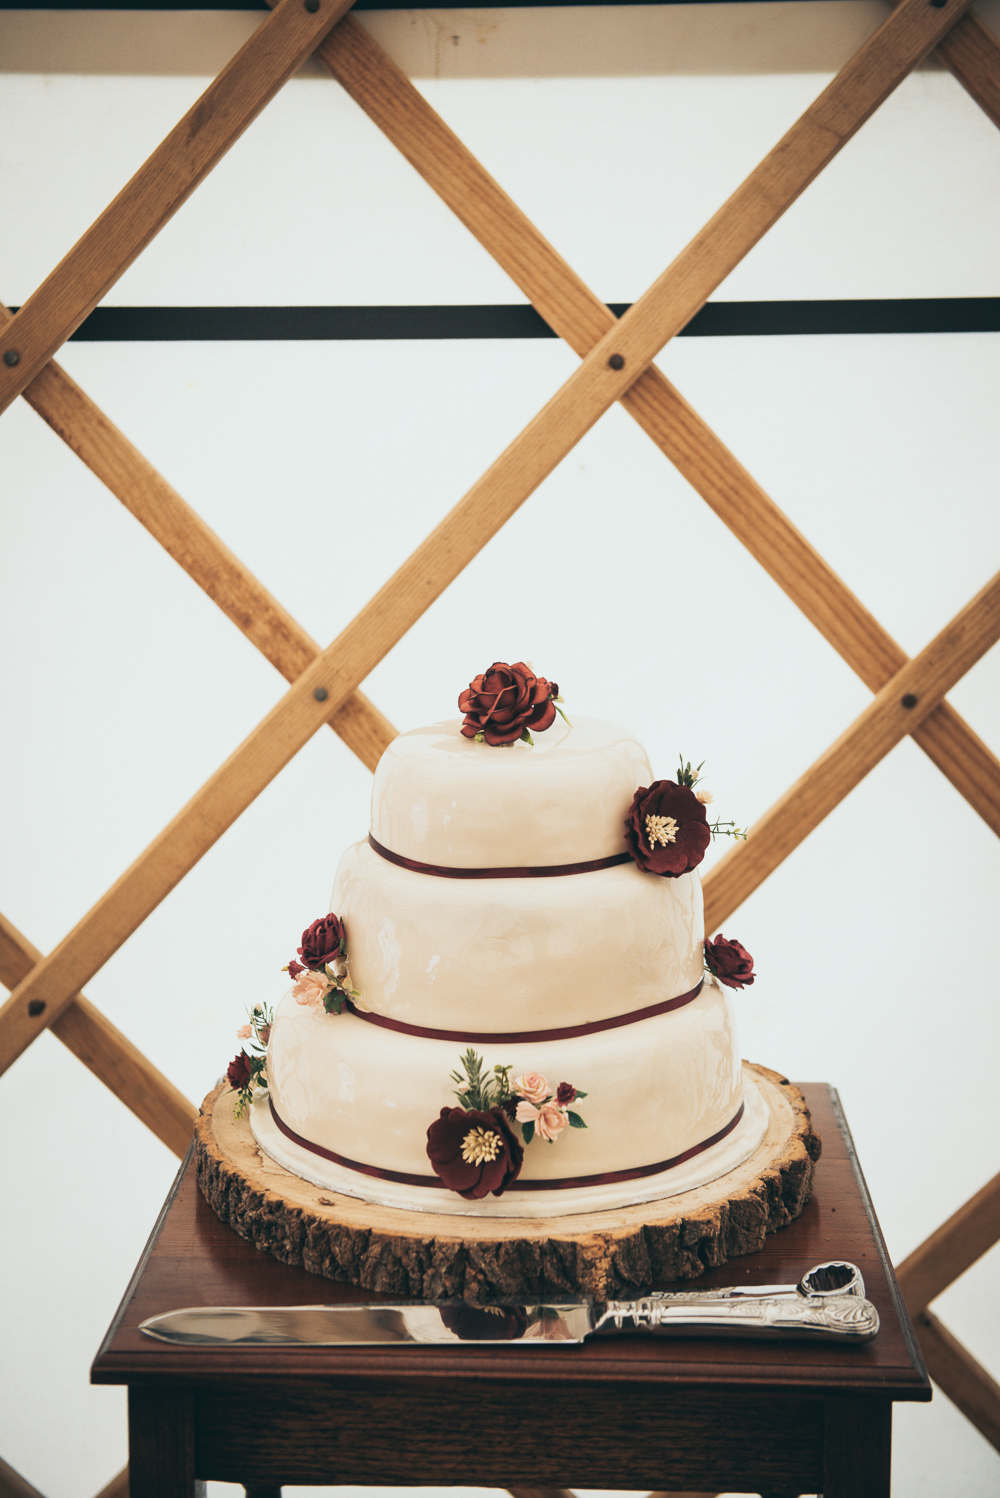 Iced Cake Burgundy Flowers Log Stand Fron Farm Yurt Retreat Wedding Cat Arwel Photography